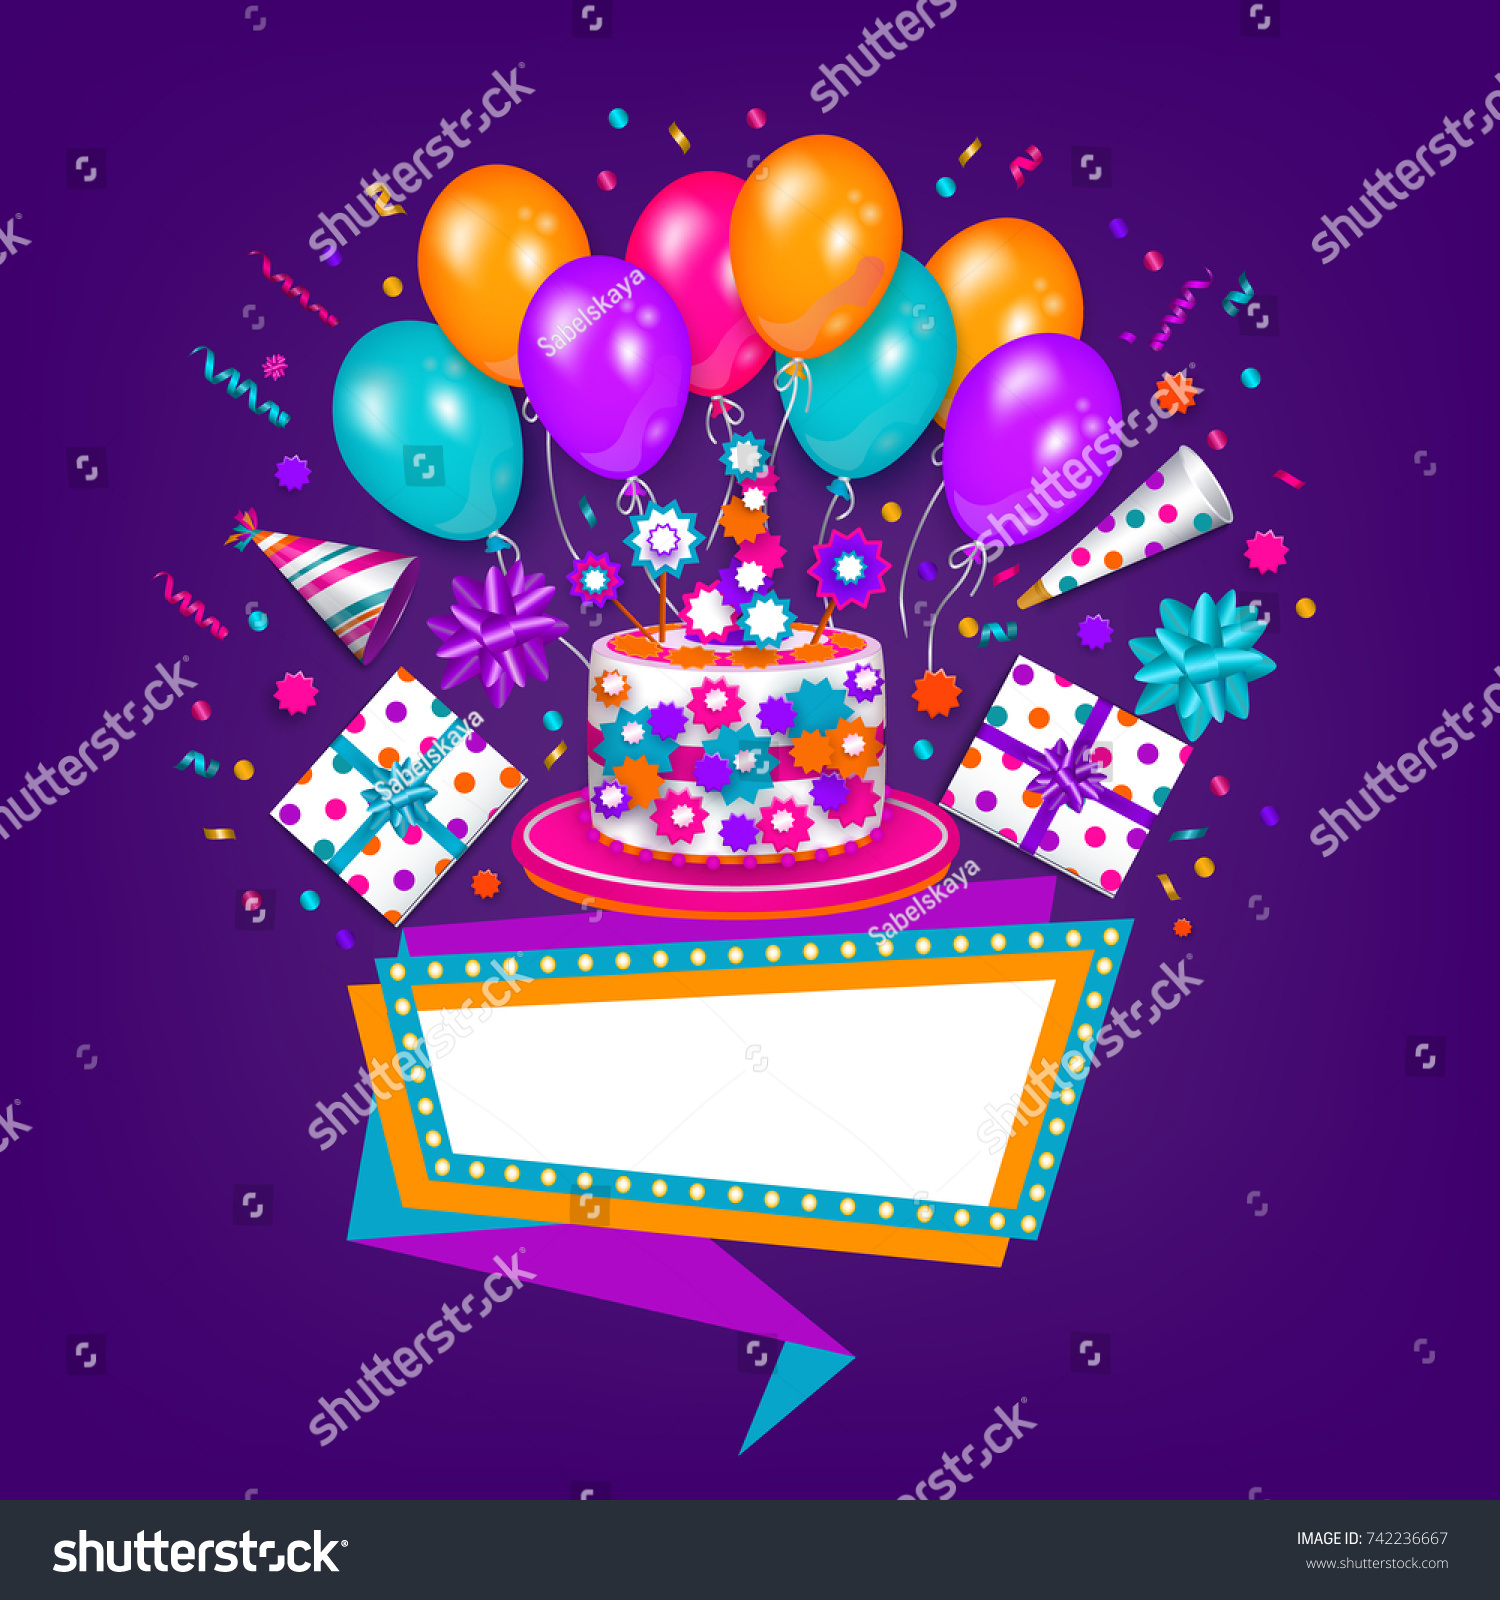 Happy Birthday Greeting Card Poster Design Stock Vector